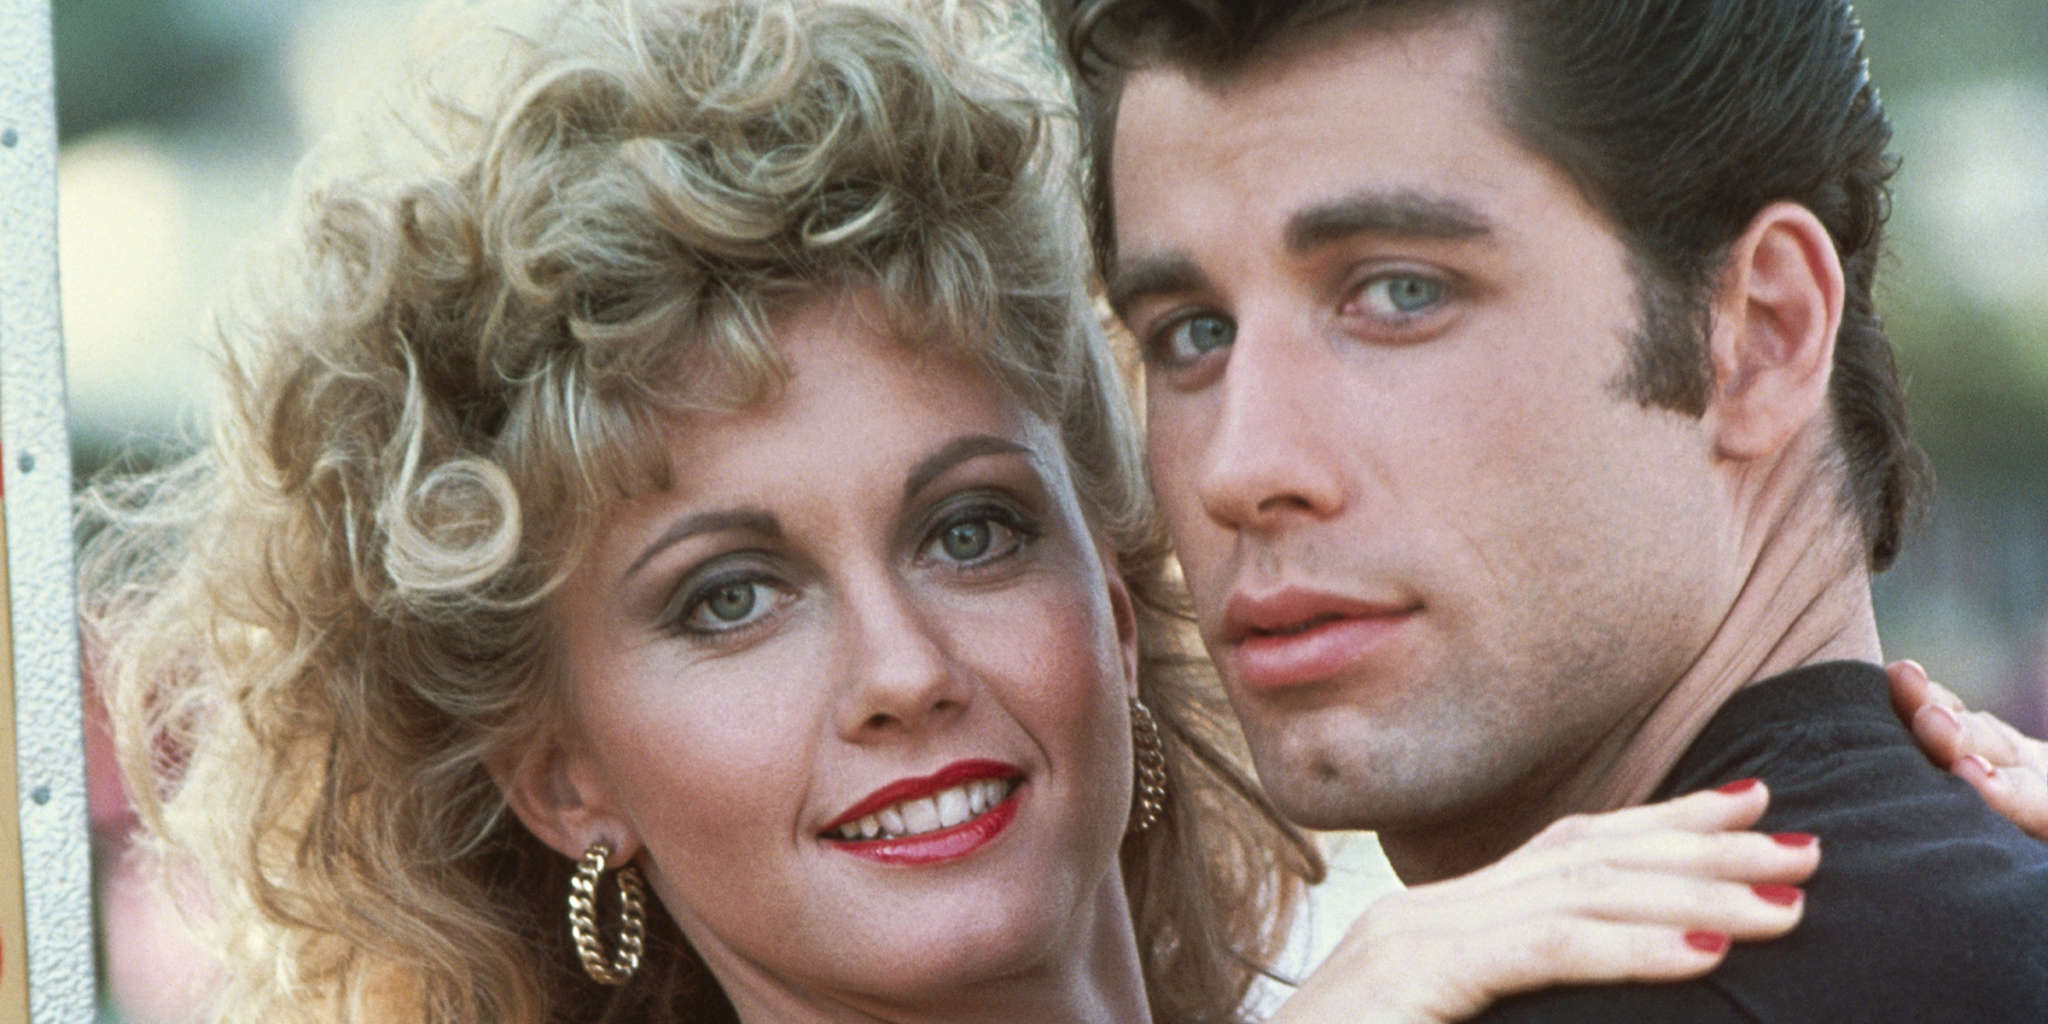 """""""olivia-newton-john-to-auction-off-over-300-personal-and-career-related-items-but-this-one-grease-piece-shell-never-sell"""""""